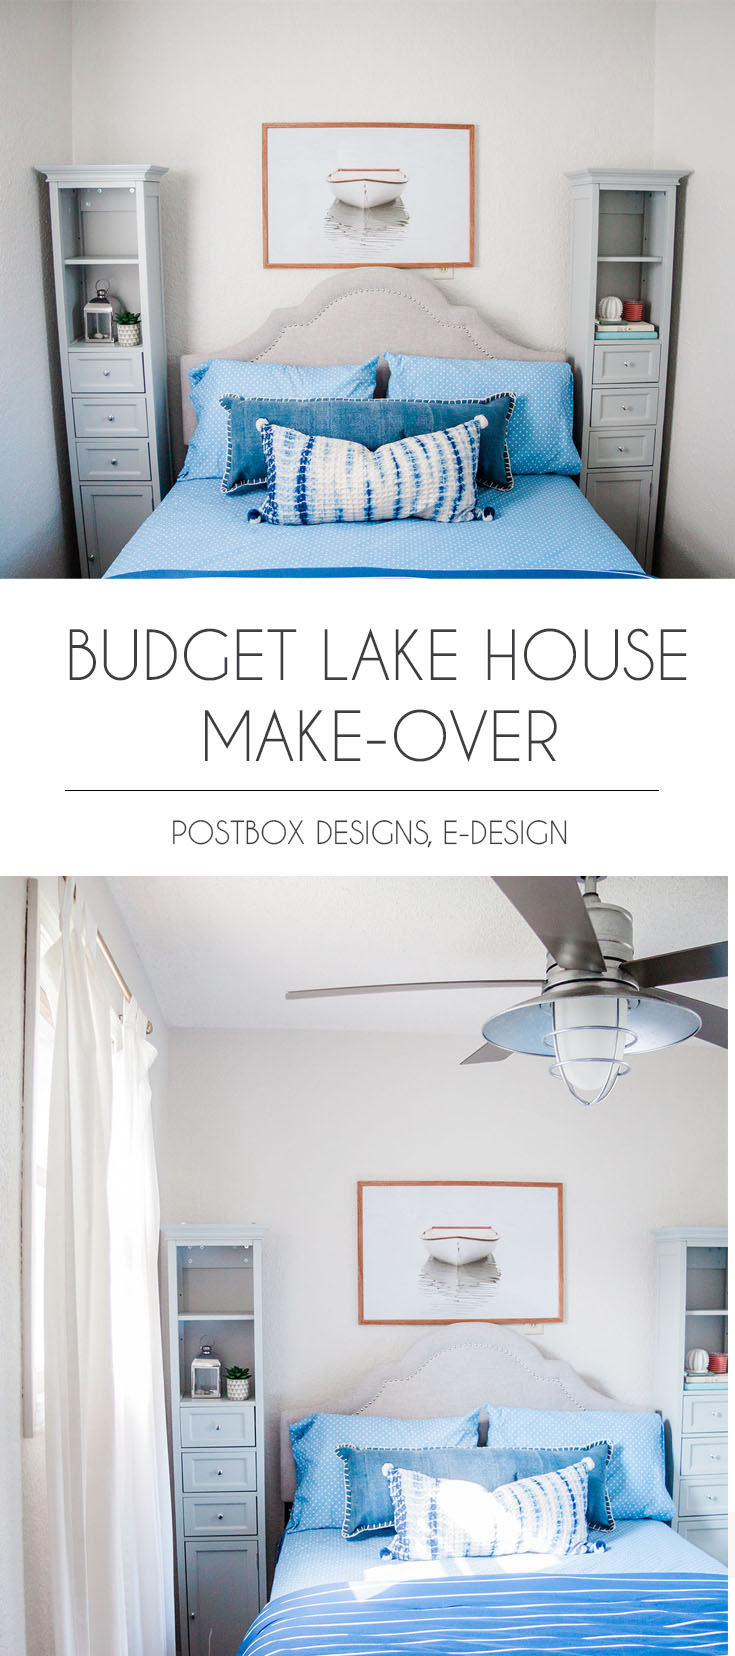 Peek Into My Own Lake House Bedroom Makeover Postbox Designs,Kitchen Table Over Dining Table Lighting Ideas